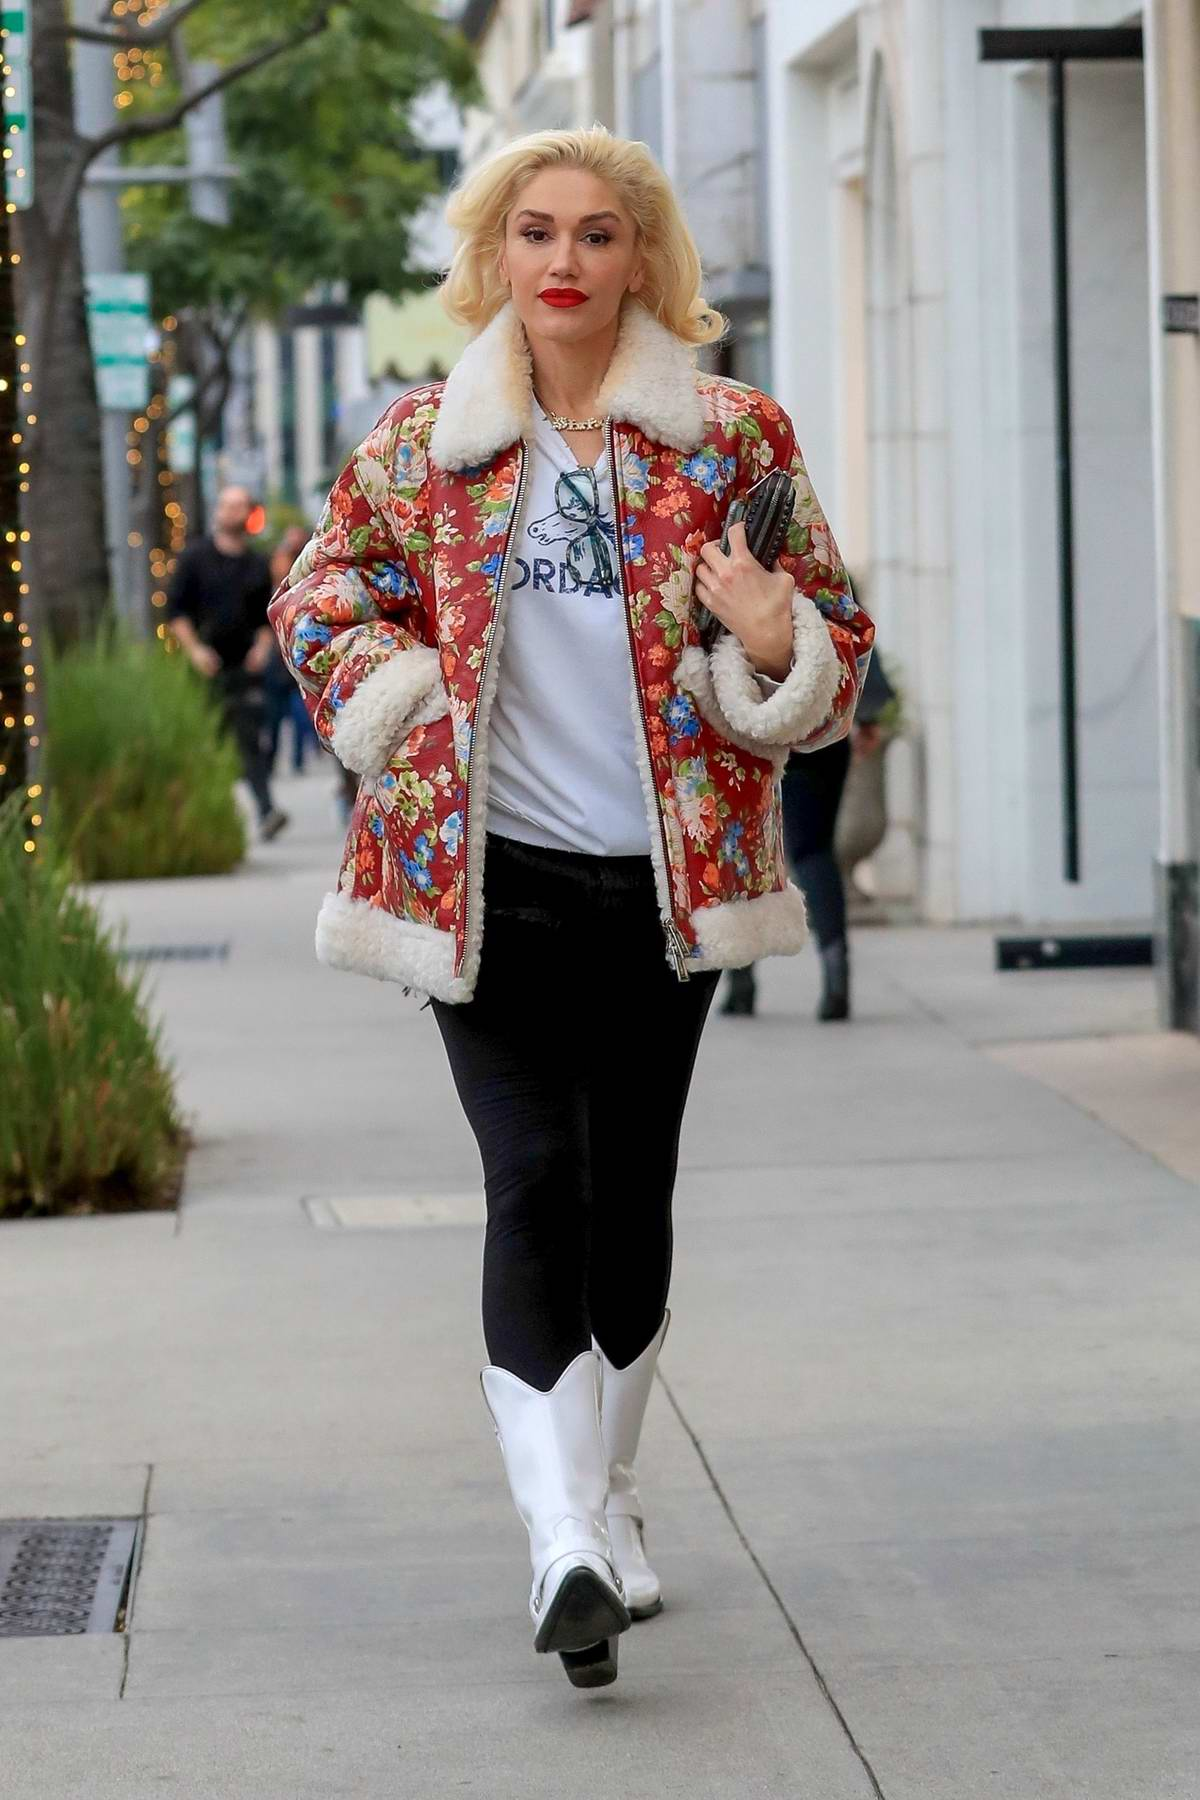 Gwen Stefani looks lovely in a fur-lined floral print jacket while out for some Christmas shopping in Beverly Hills, California